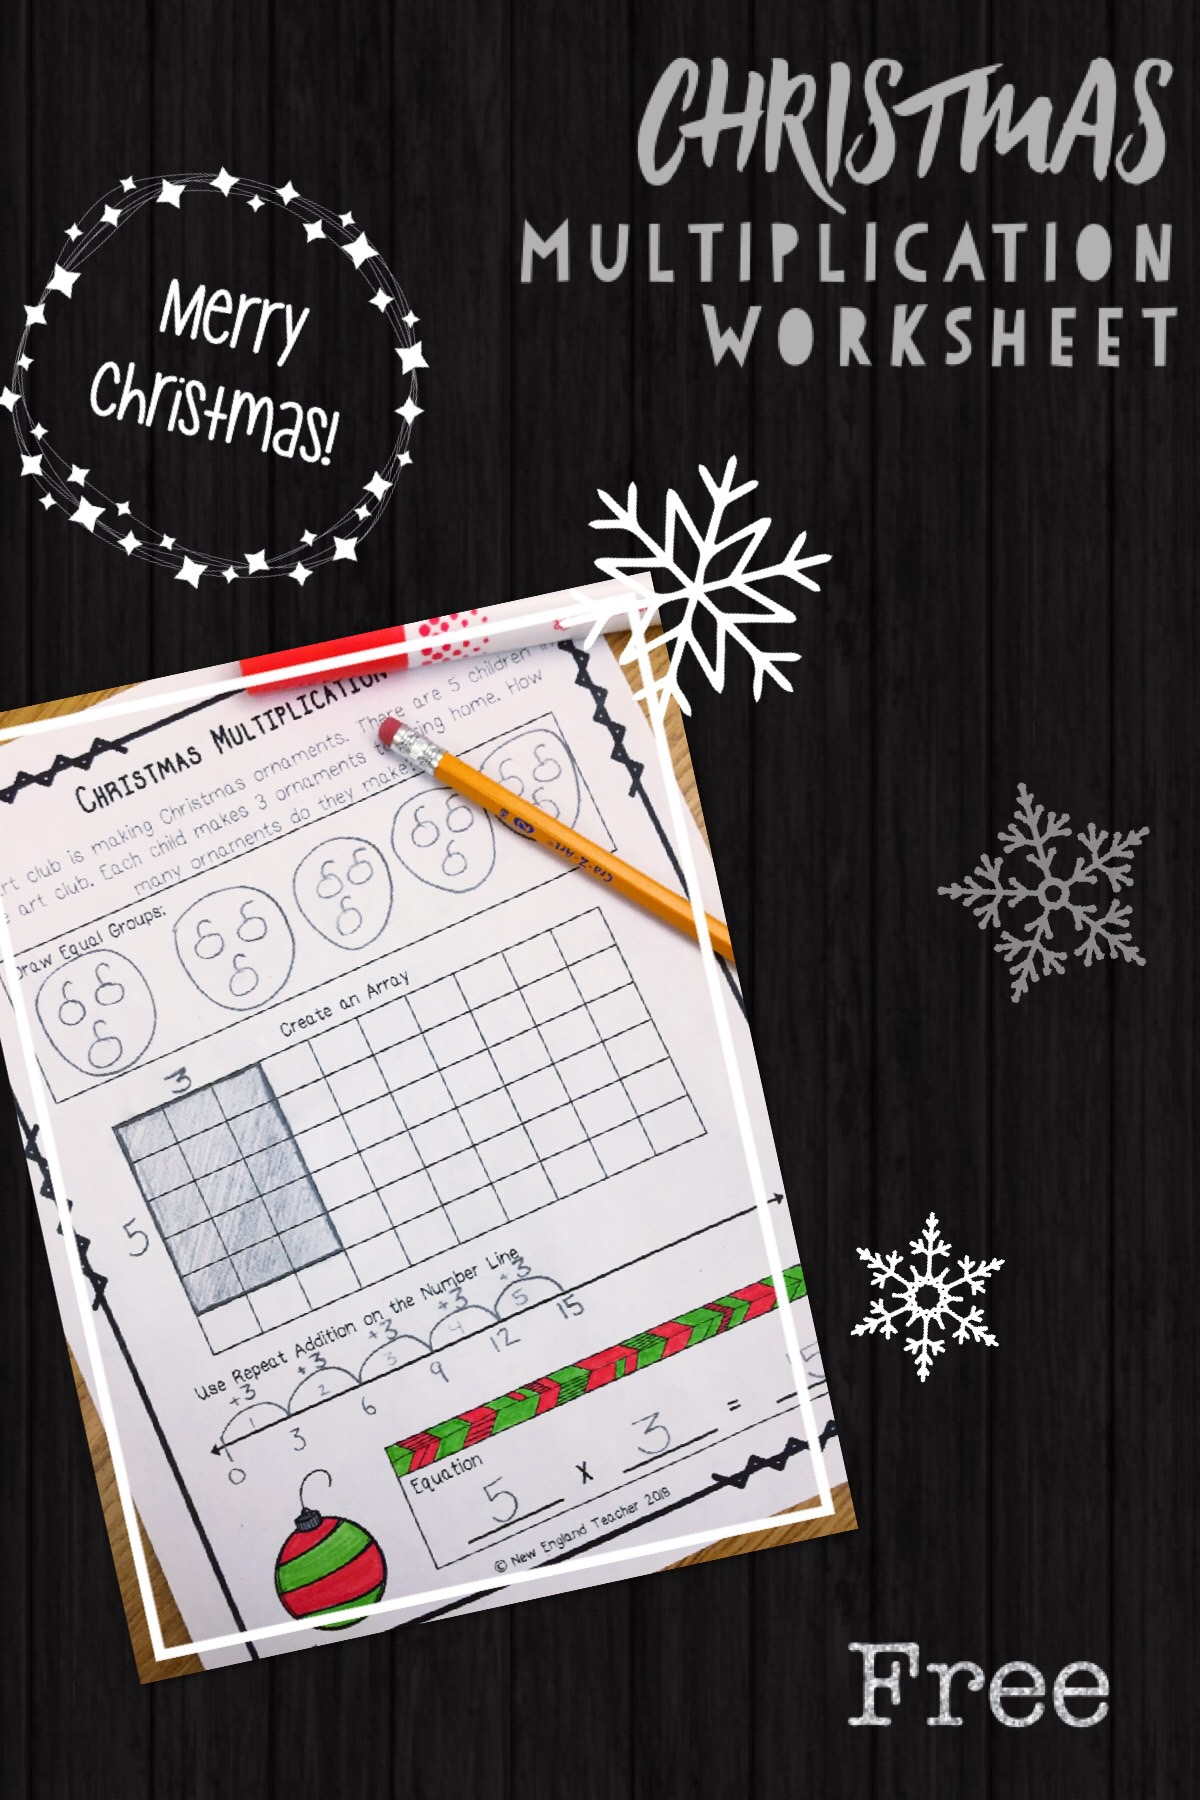 Free Christmas Multiplication Worksheet New England Teacher